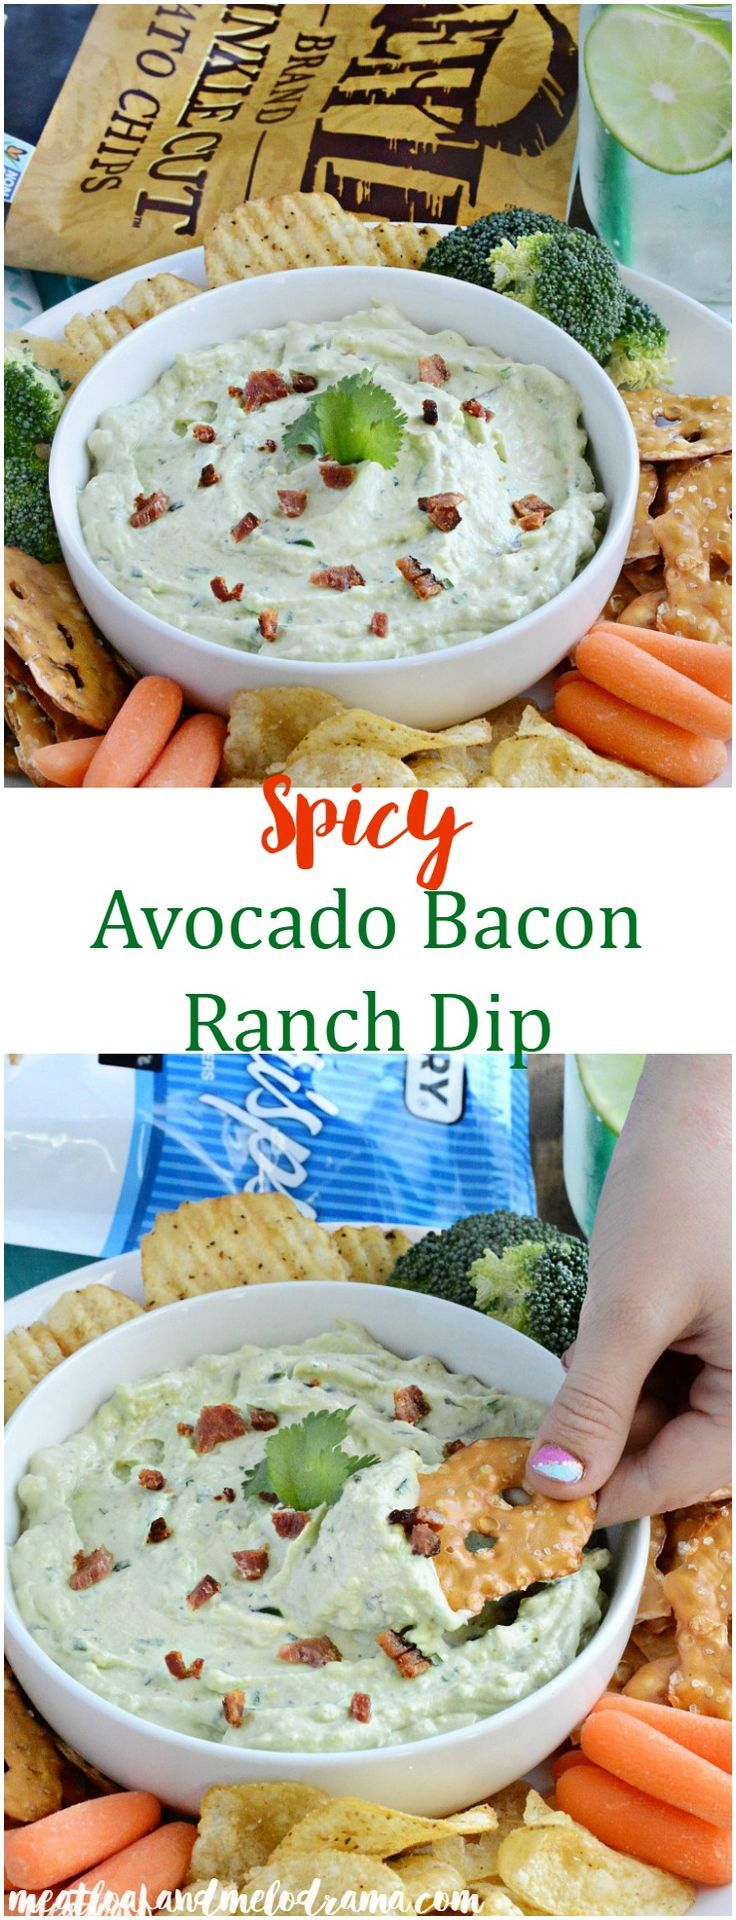 Spicy Avocado Bacon Ranch Dip - A light, fluffy dip that's perfect for your snack or appetizer table on game days, parties or anytime! AD #TheNewFanFavorites